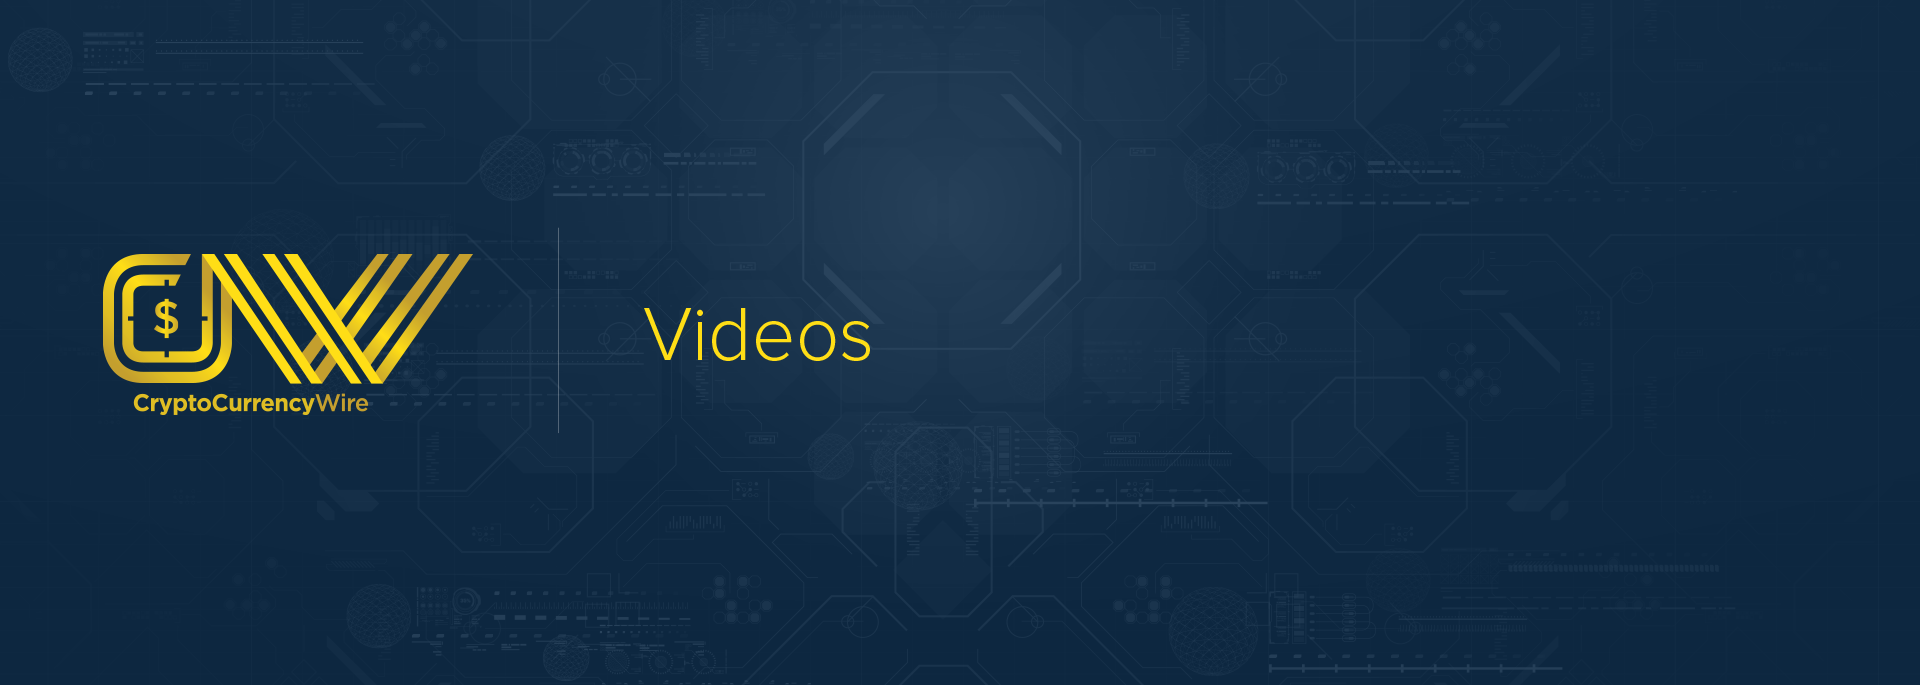 CryptoCurrencyWire Videos